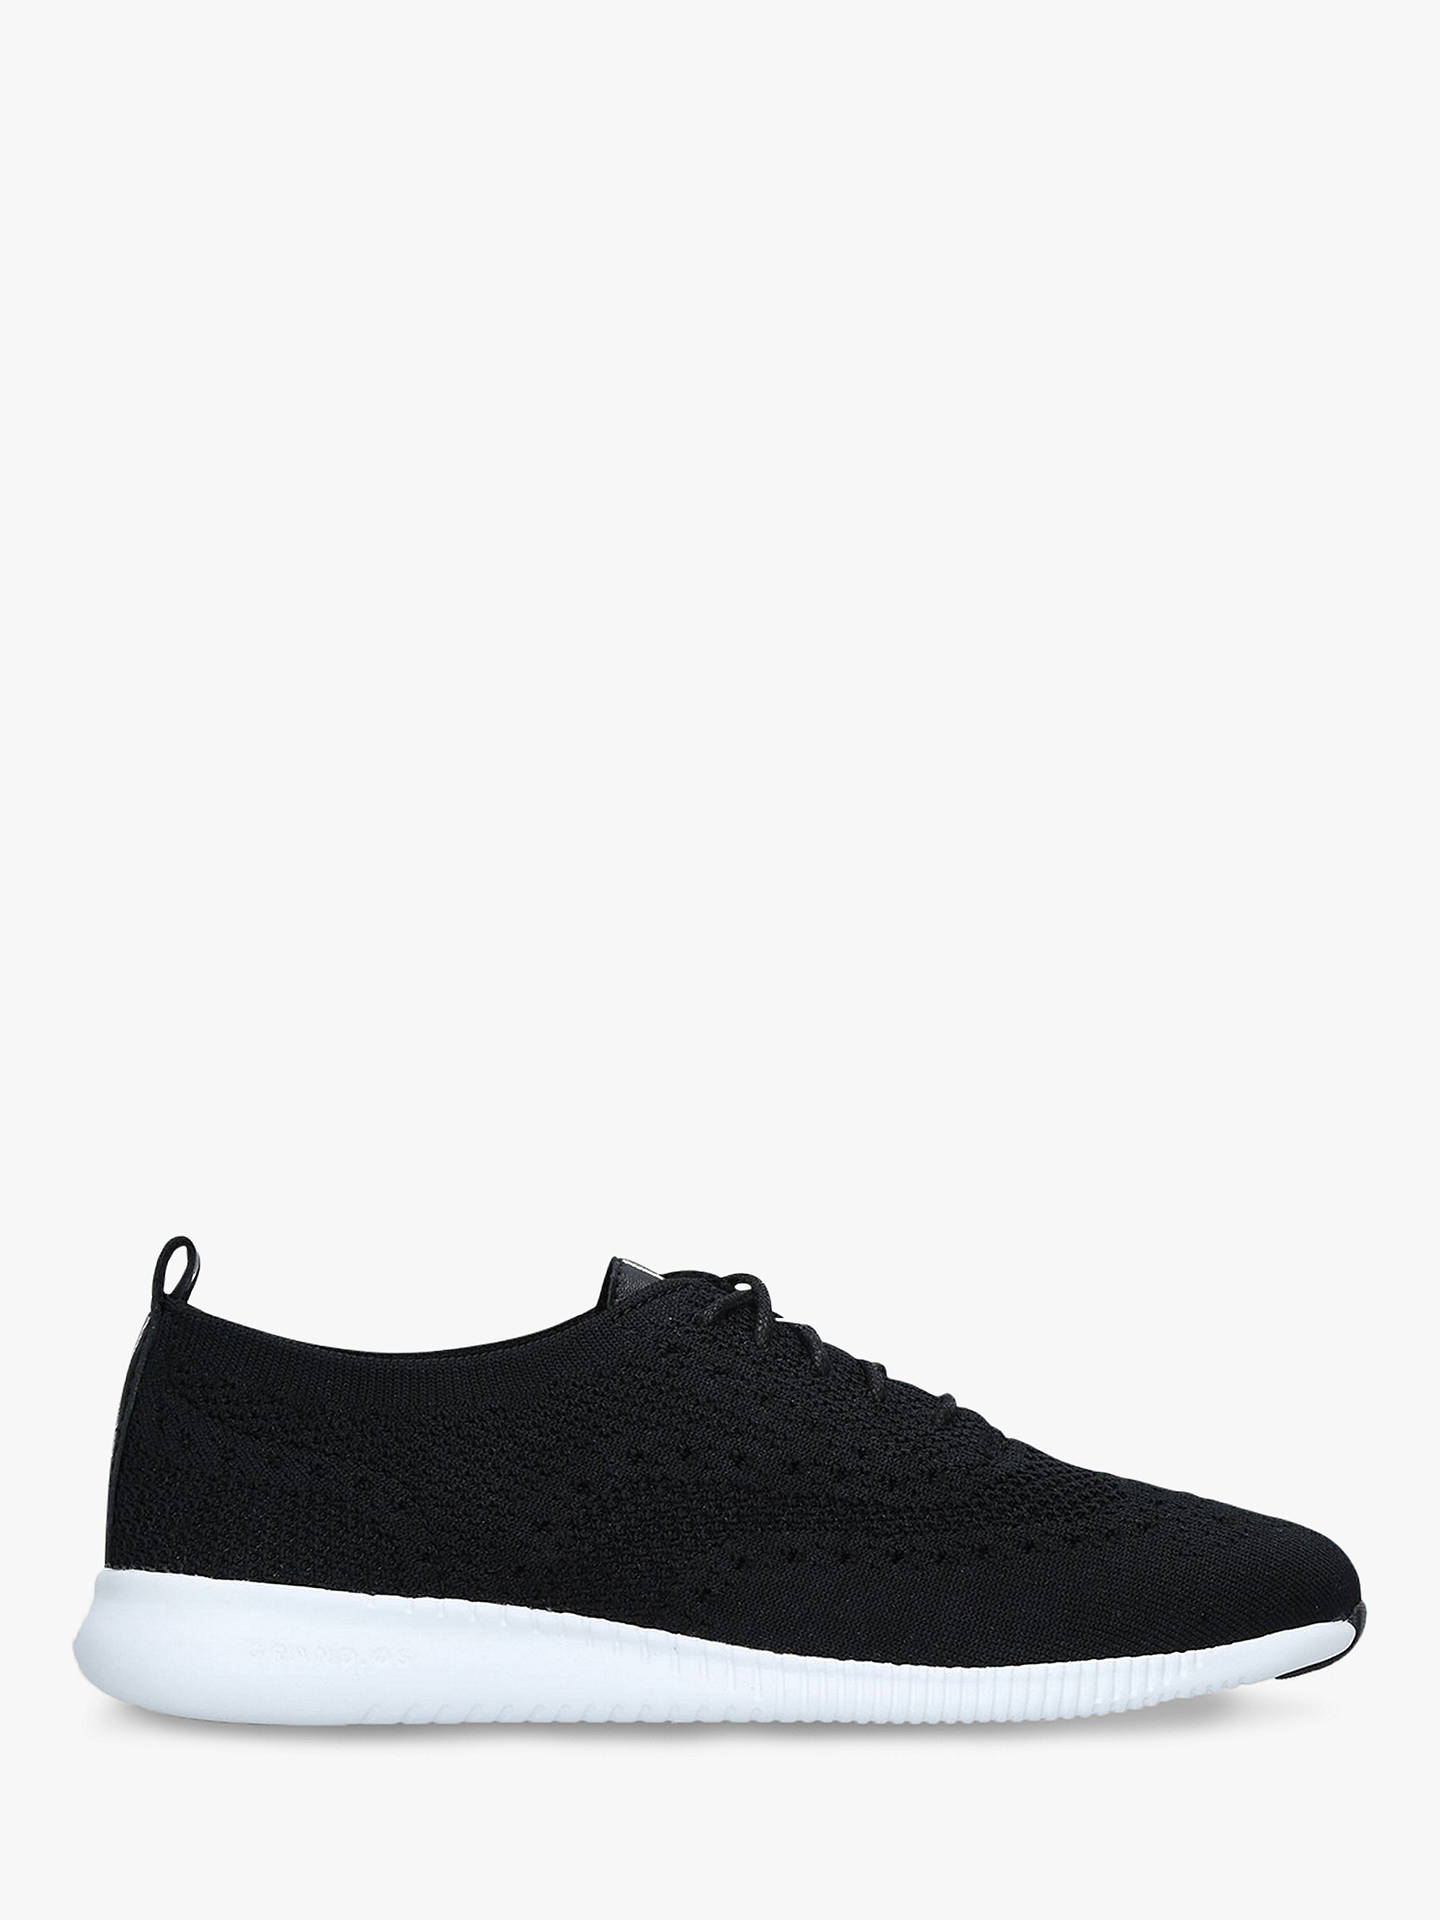 7c90a4e63c6 Cole Haan Zero Stitch Lace Up Trainers, Black